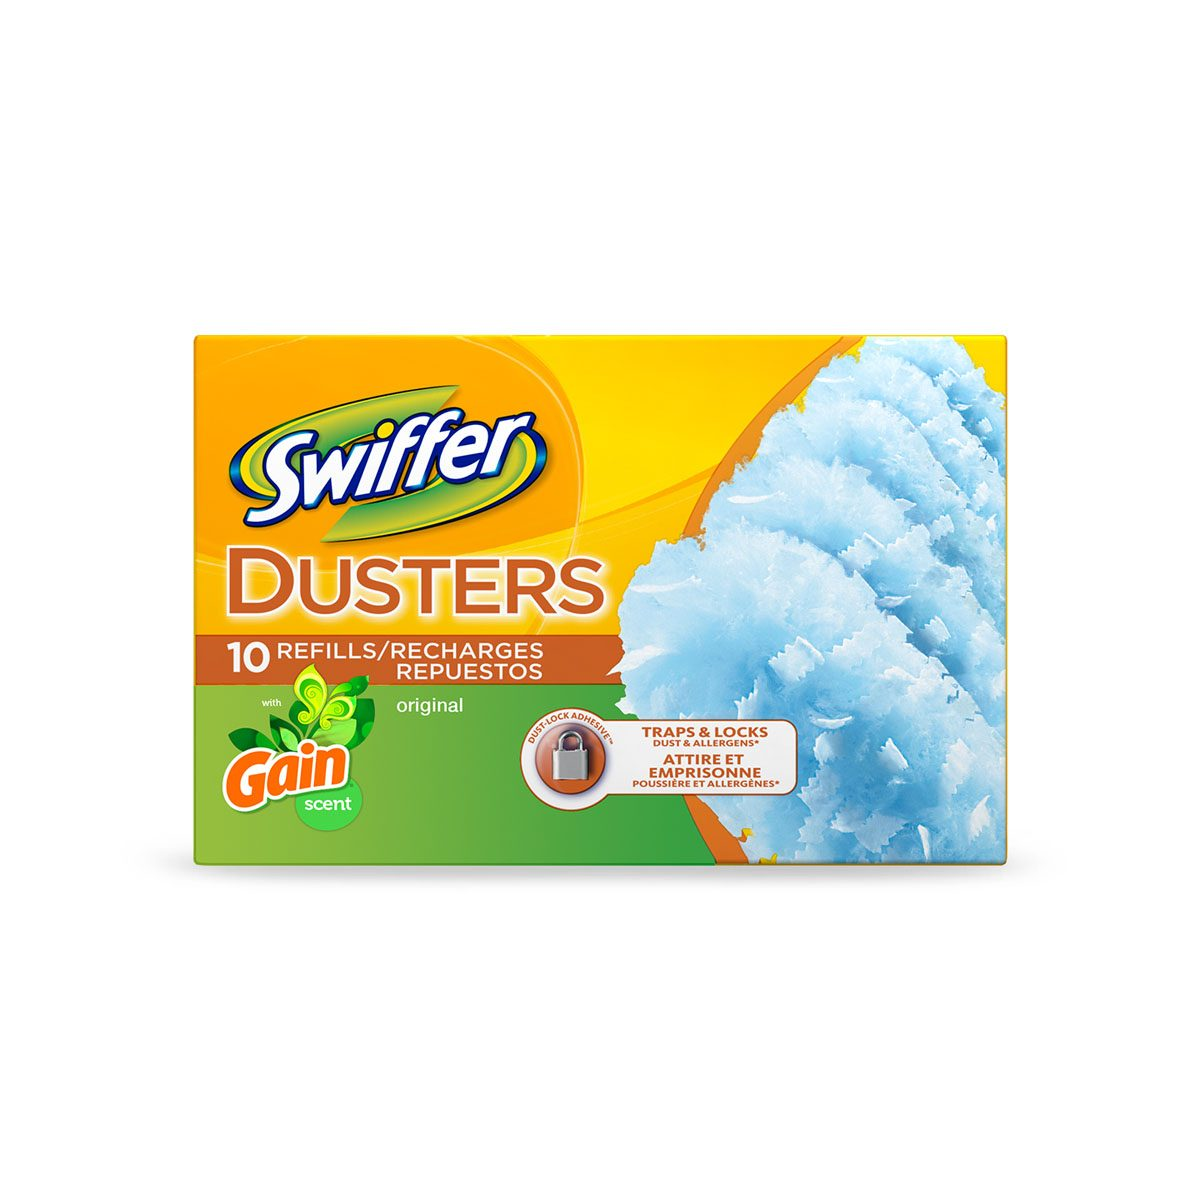 Recharges Duster Swiffer avec Gain